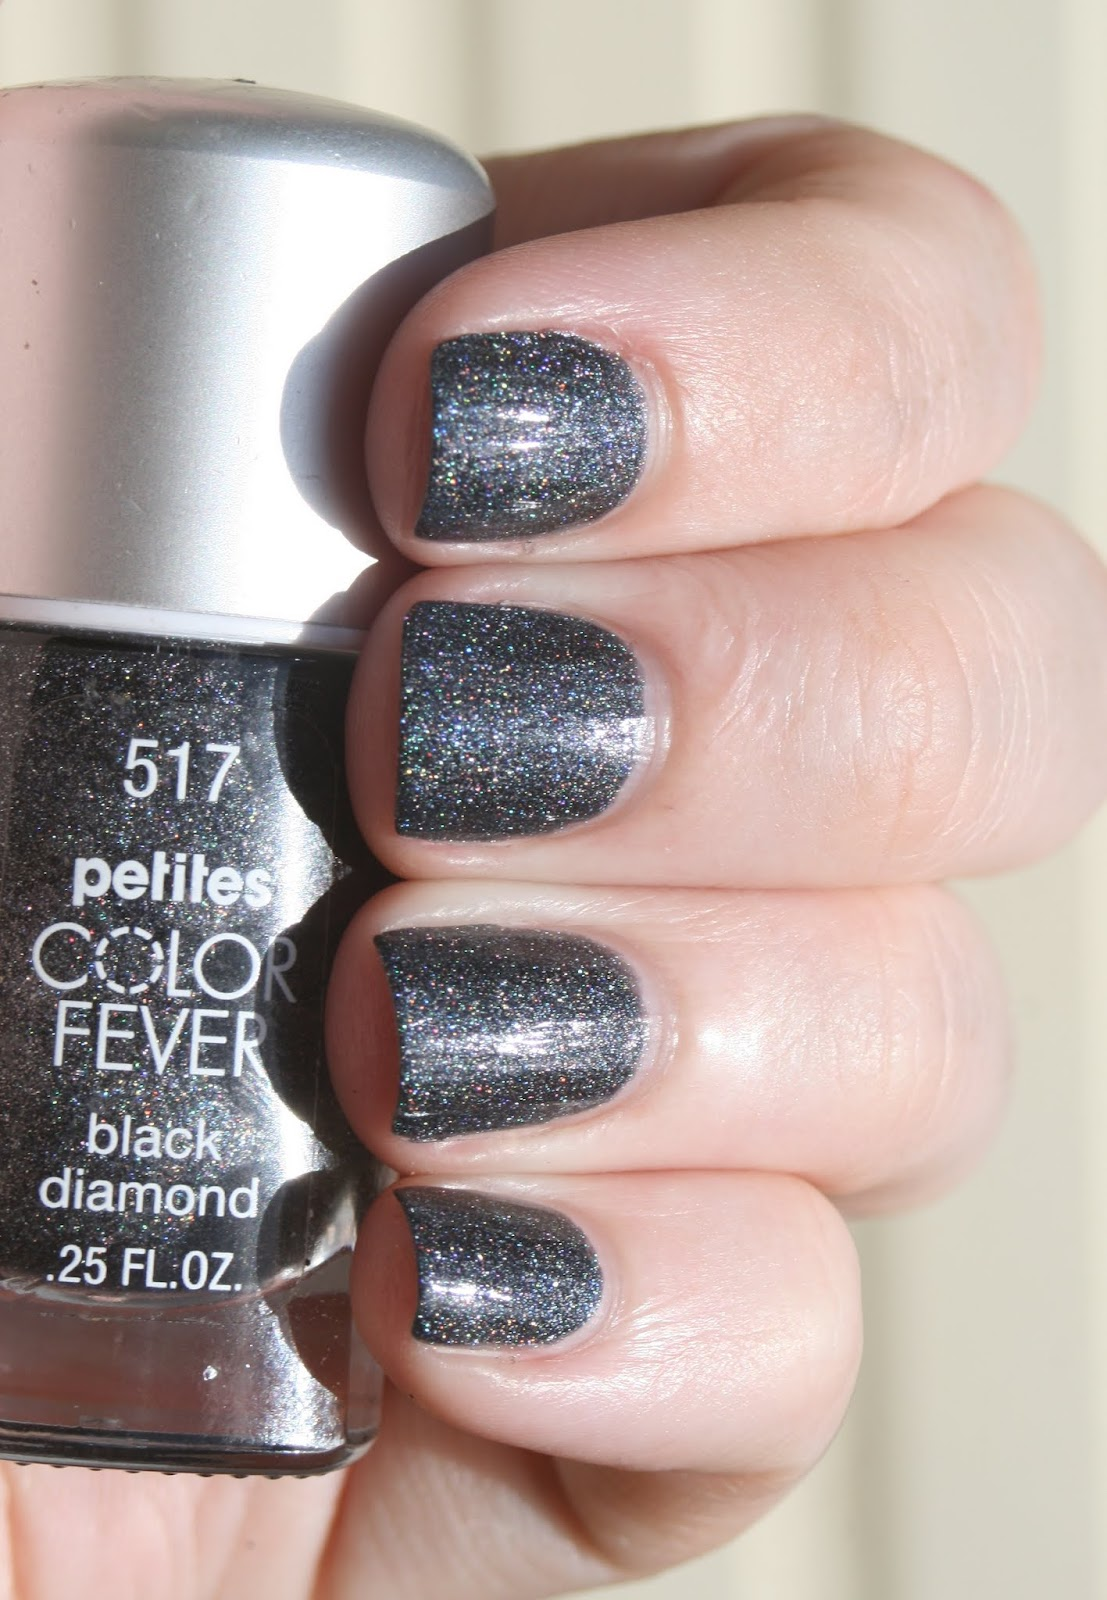 Petites Color Fever Black Diamond swatch